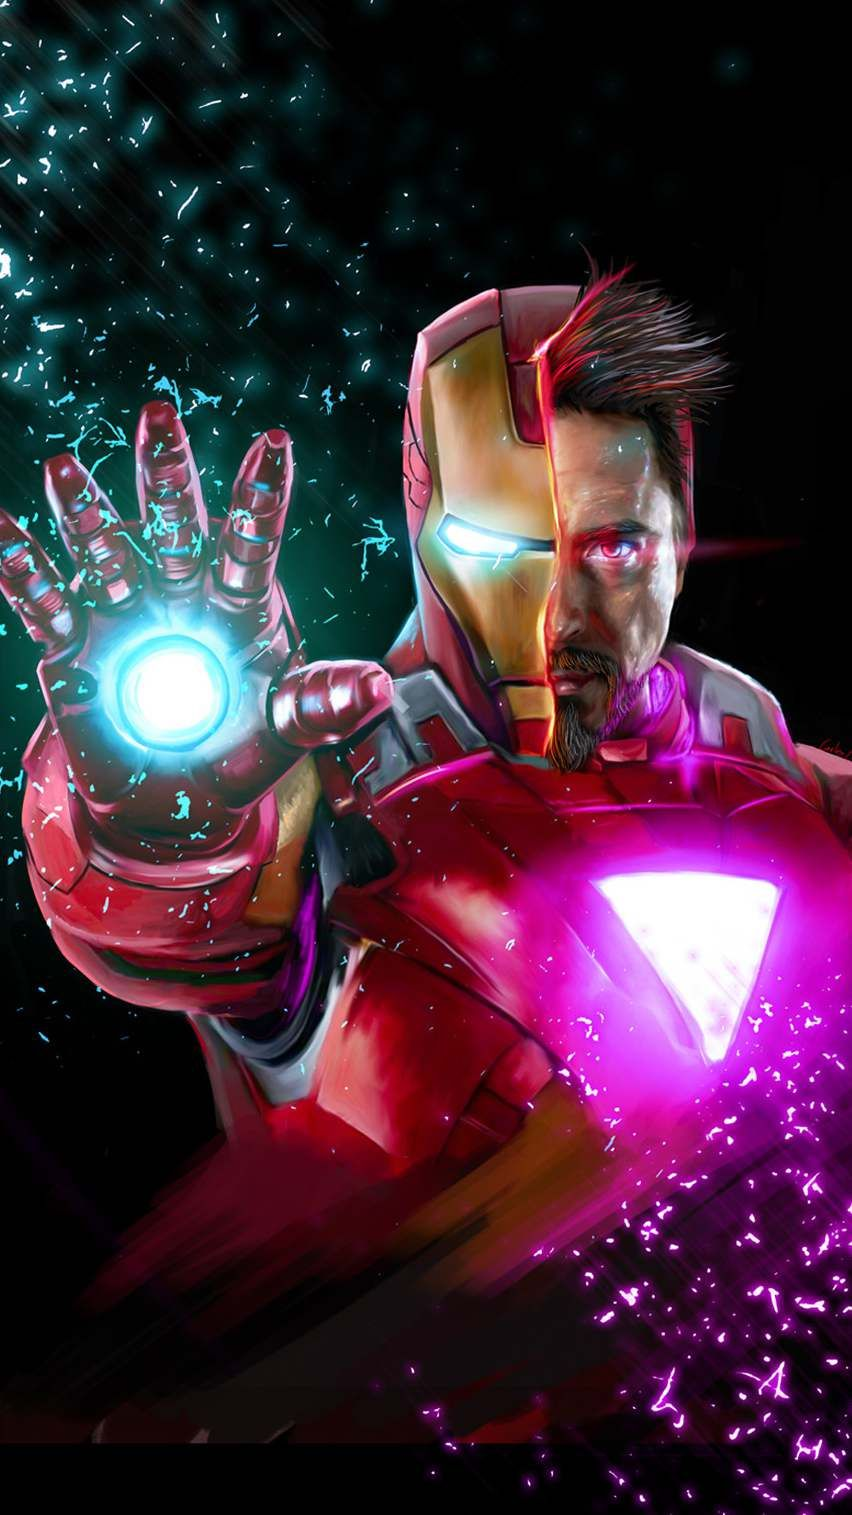 Iron Man Wallpapers From Avengers Endgame In Hd 4k Whats